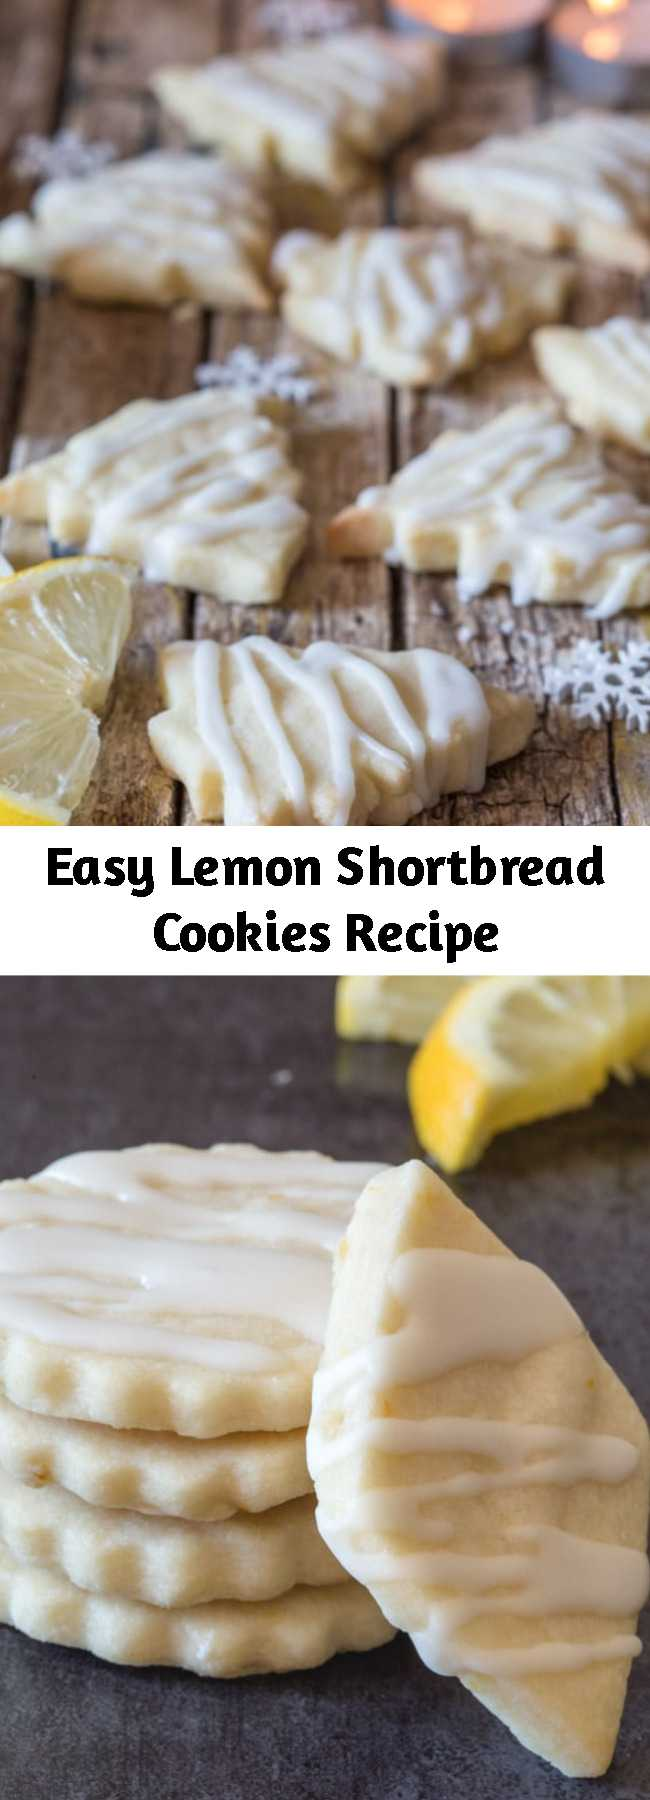 Easy Lemon Shortbread Cookies Recipe - Shortbread Cookies are a must and these Lemon Shortbread are the perfect Lemon Lovers melt in your mouth Cookie.